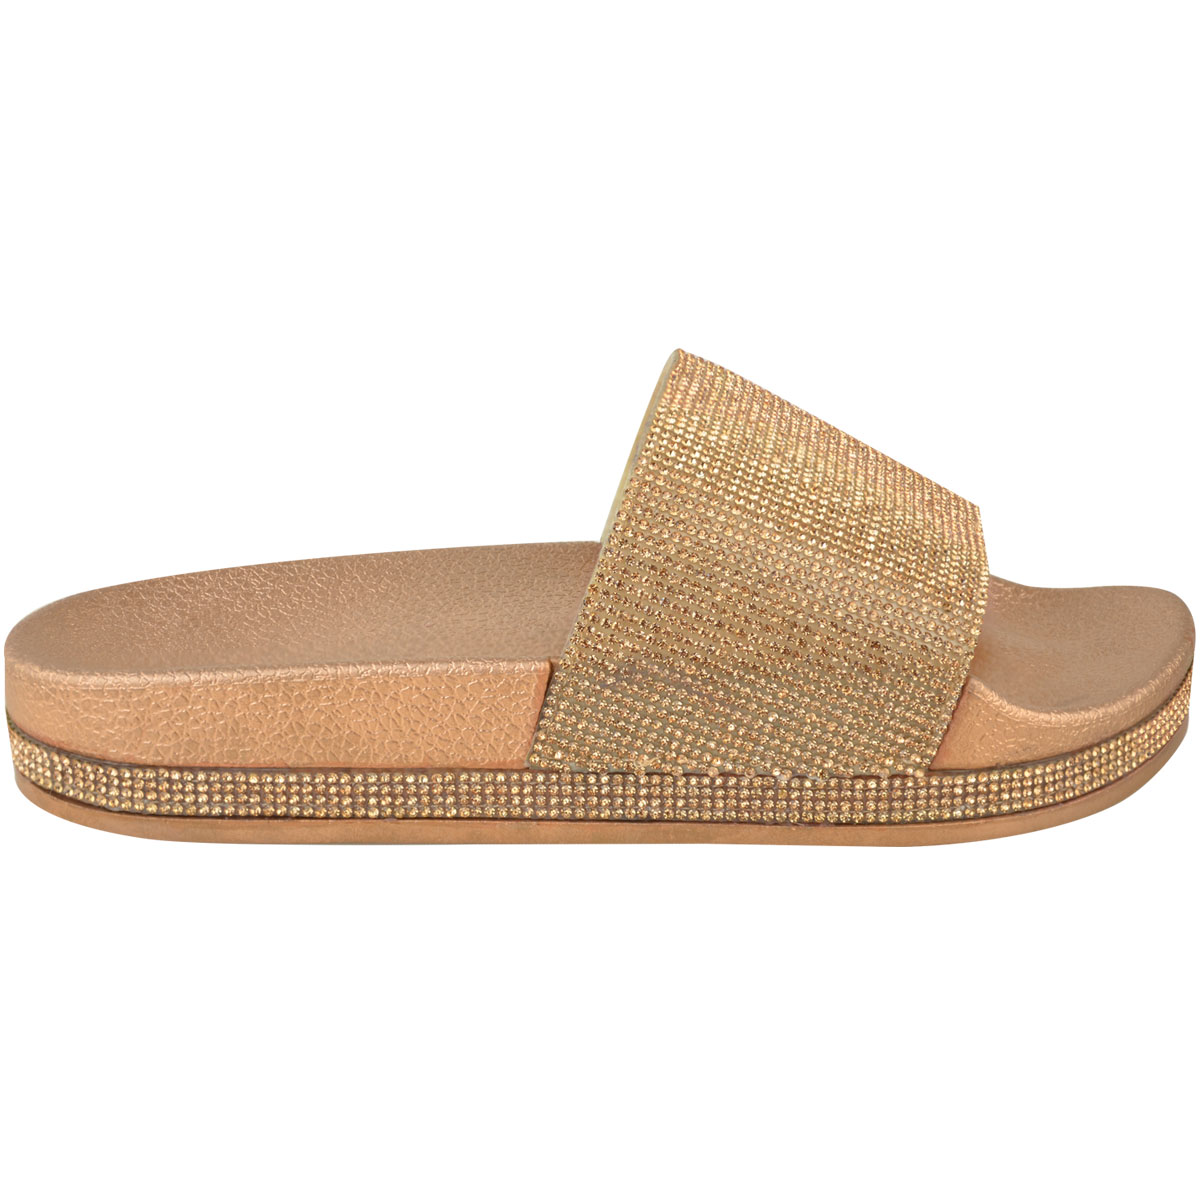 Womens-Ladies-Flat-Slides-Sandals-Diamante-Sparkly-Sliders-Slippers-Shoes-Size thumbnail 13